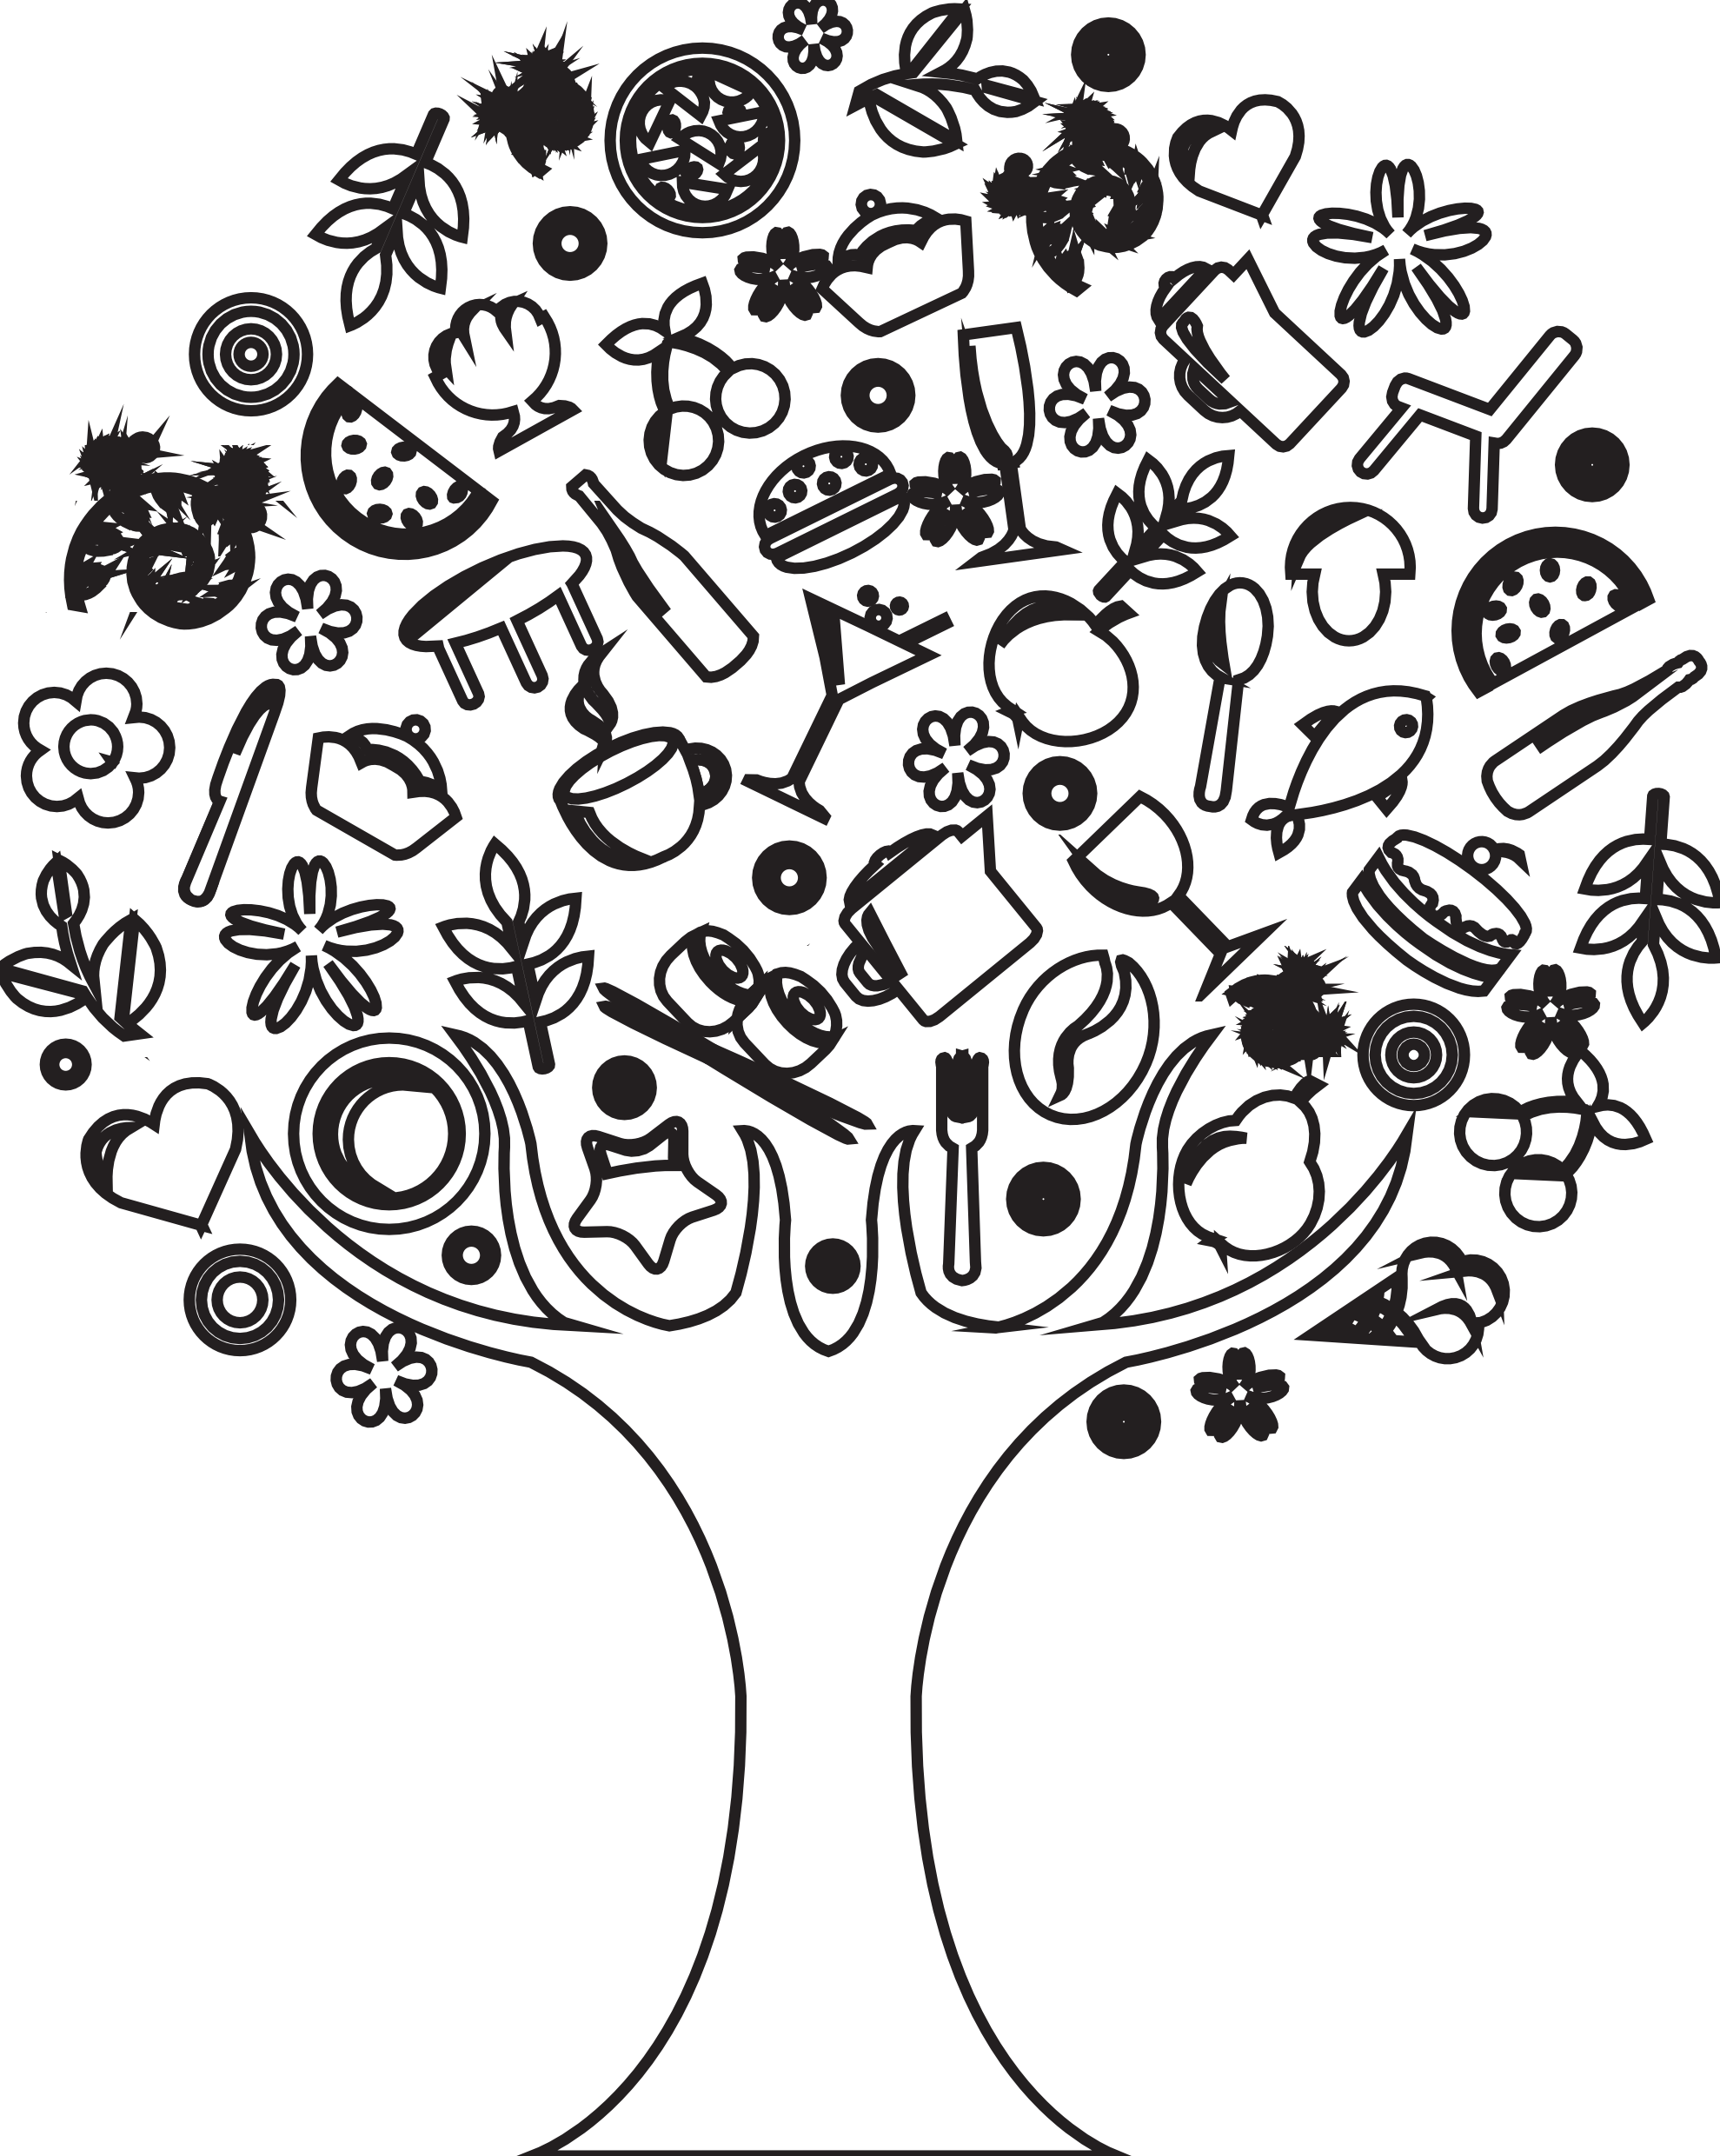 White drawing wallpaper. Tree drawings have a